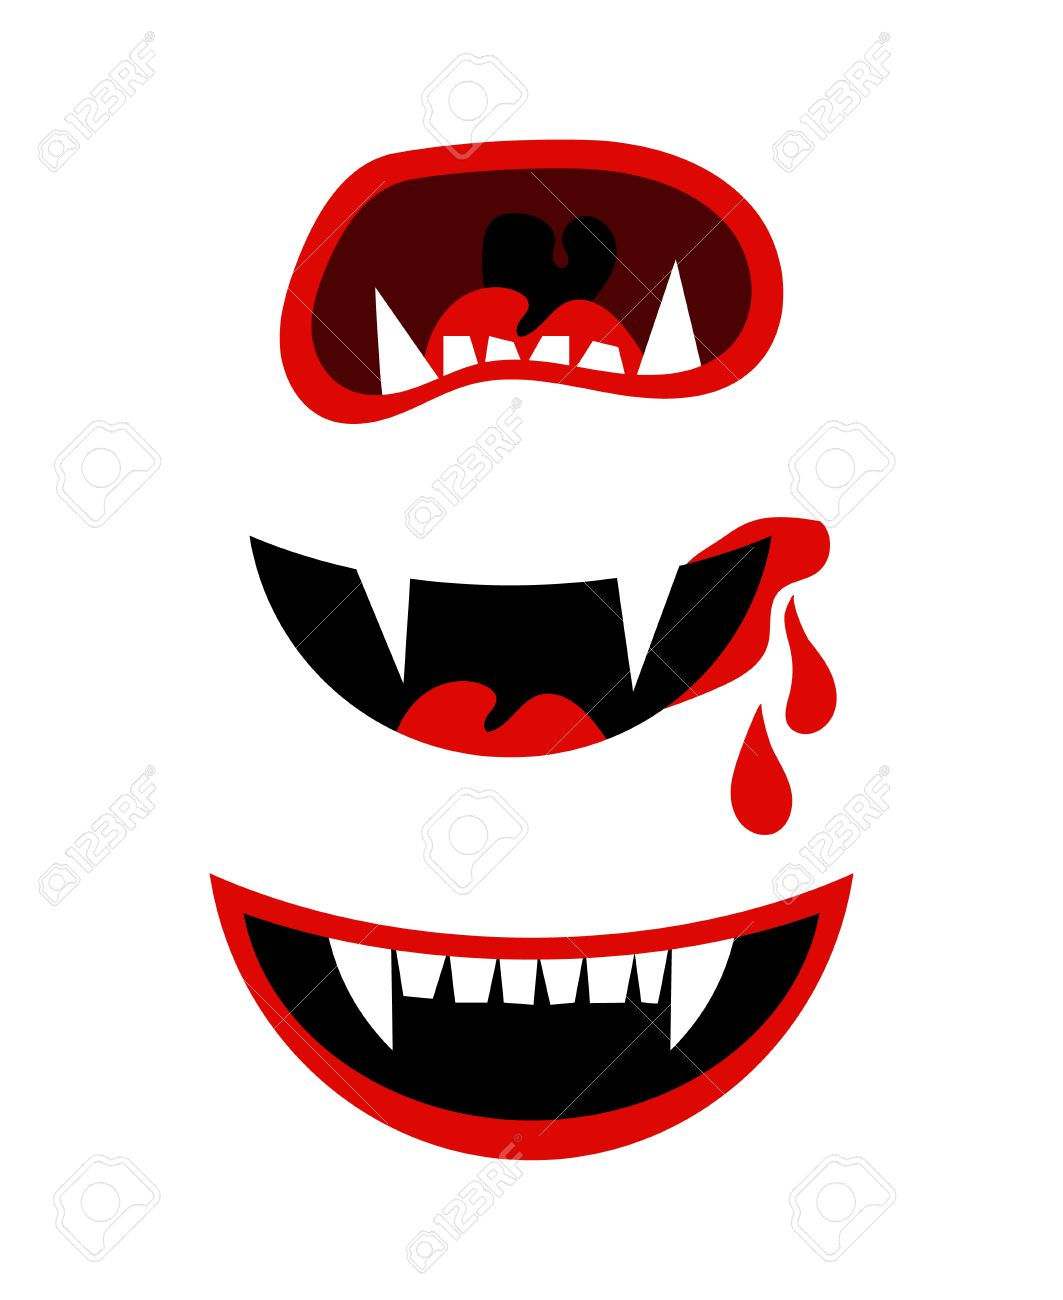 Halloween Vampire Fangs Clipart.Vampire Mouth With Fangs Vector Halloween Horror Teeth Isolated